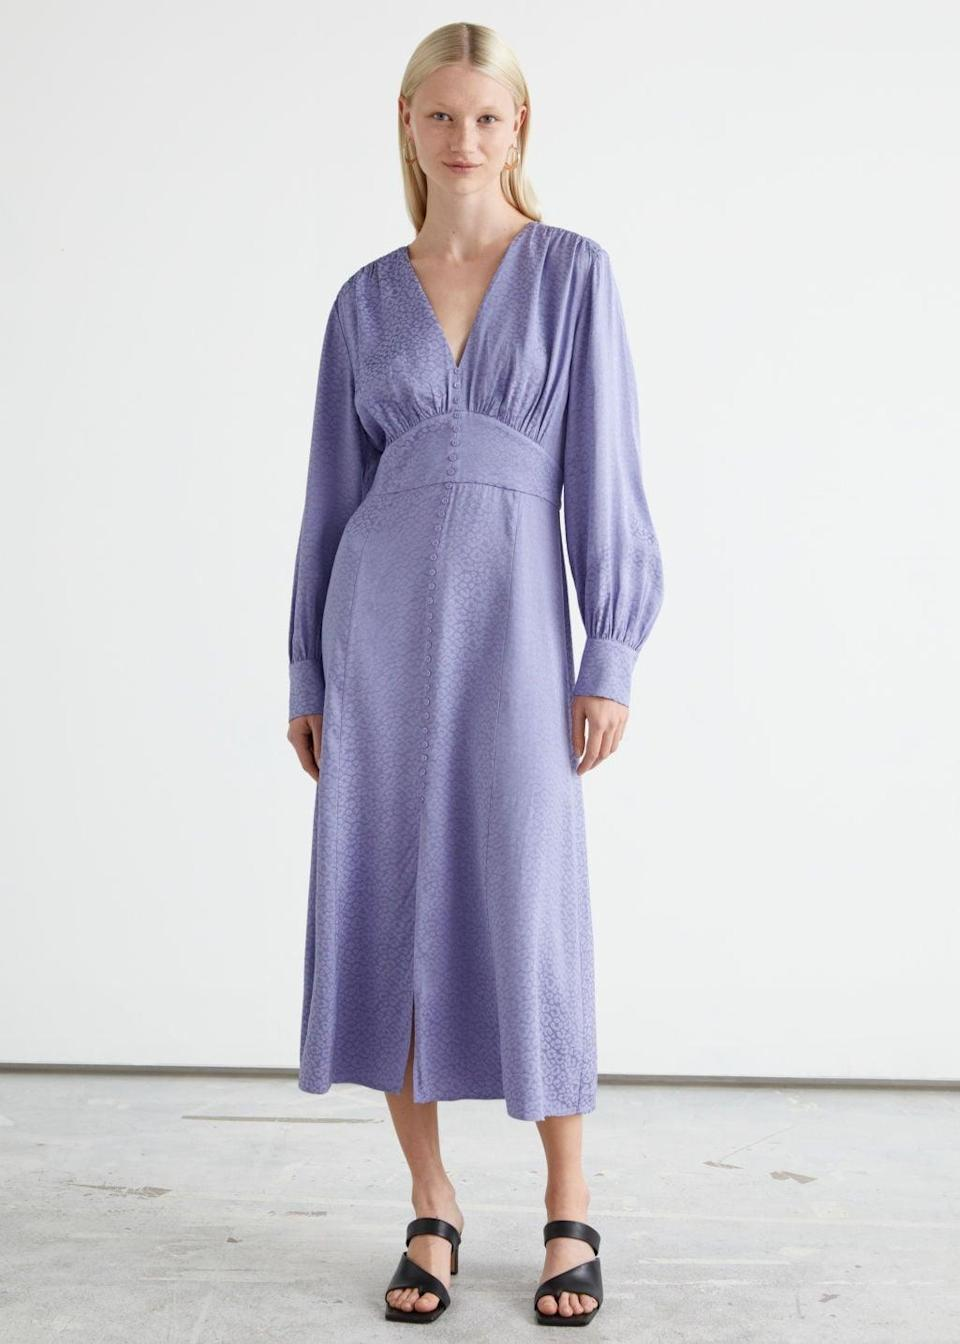 <p>From the fitted waistline to the voluminous sleeves, this <span>&amp; Other Stories Voluminous Sleeve Jacquard Midi Dress</span> ($90, originally $149) exudes femininity, confidence, and effortless style. The lavender color is also fresh and modern.</p>